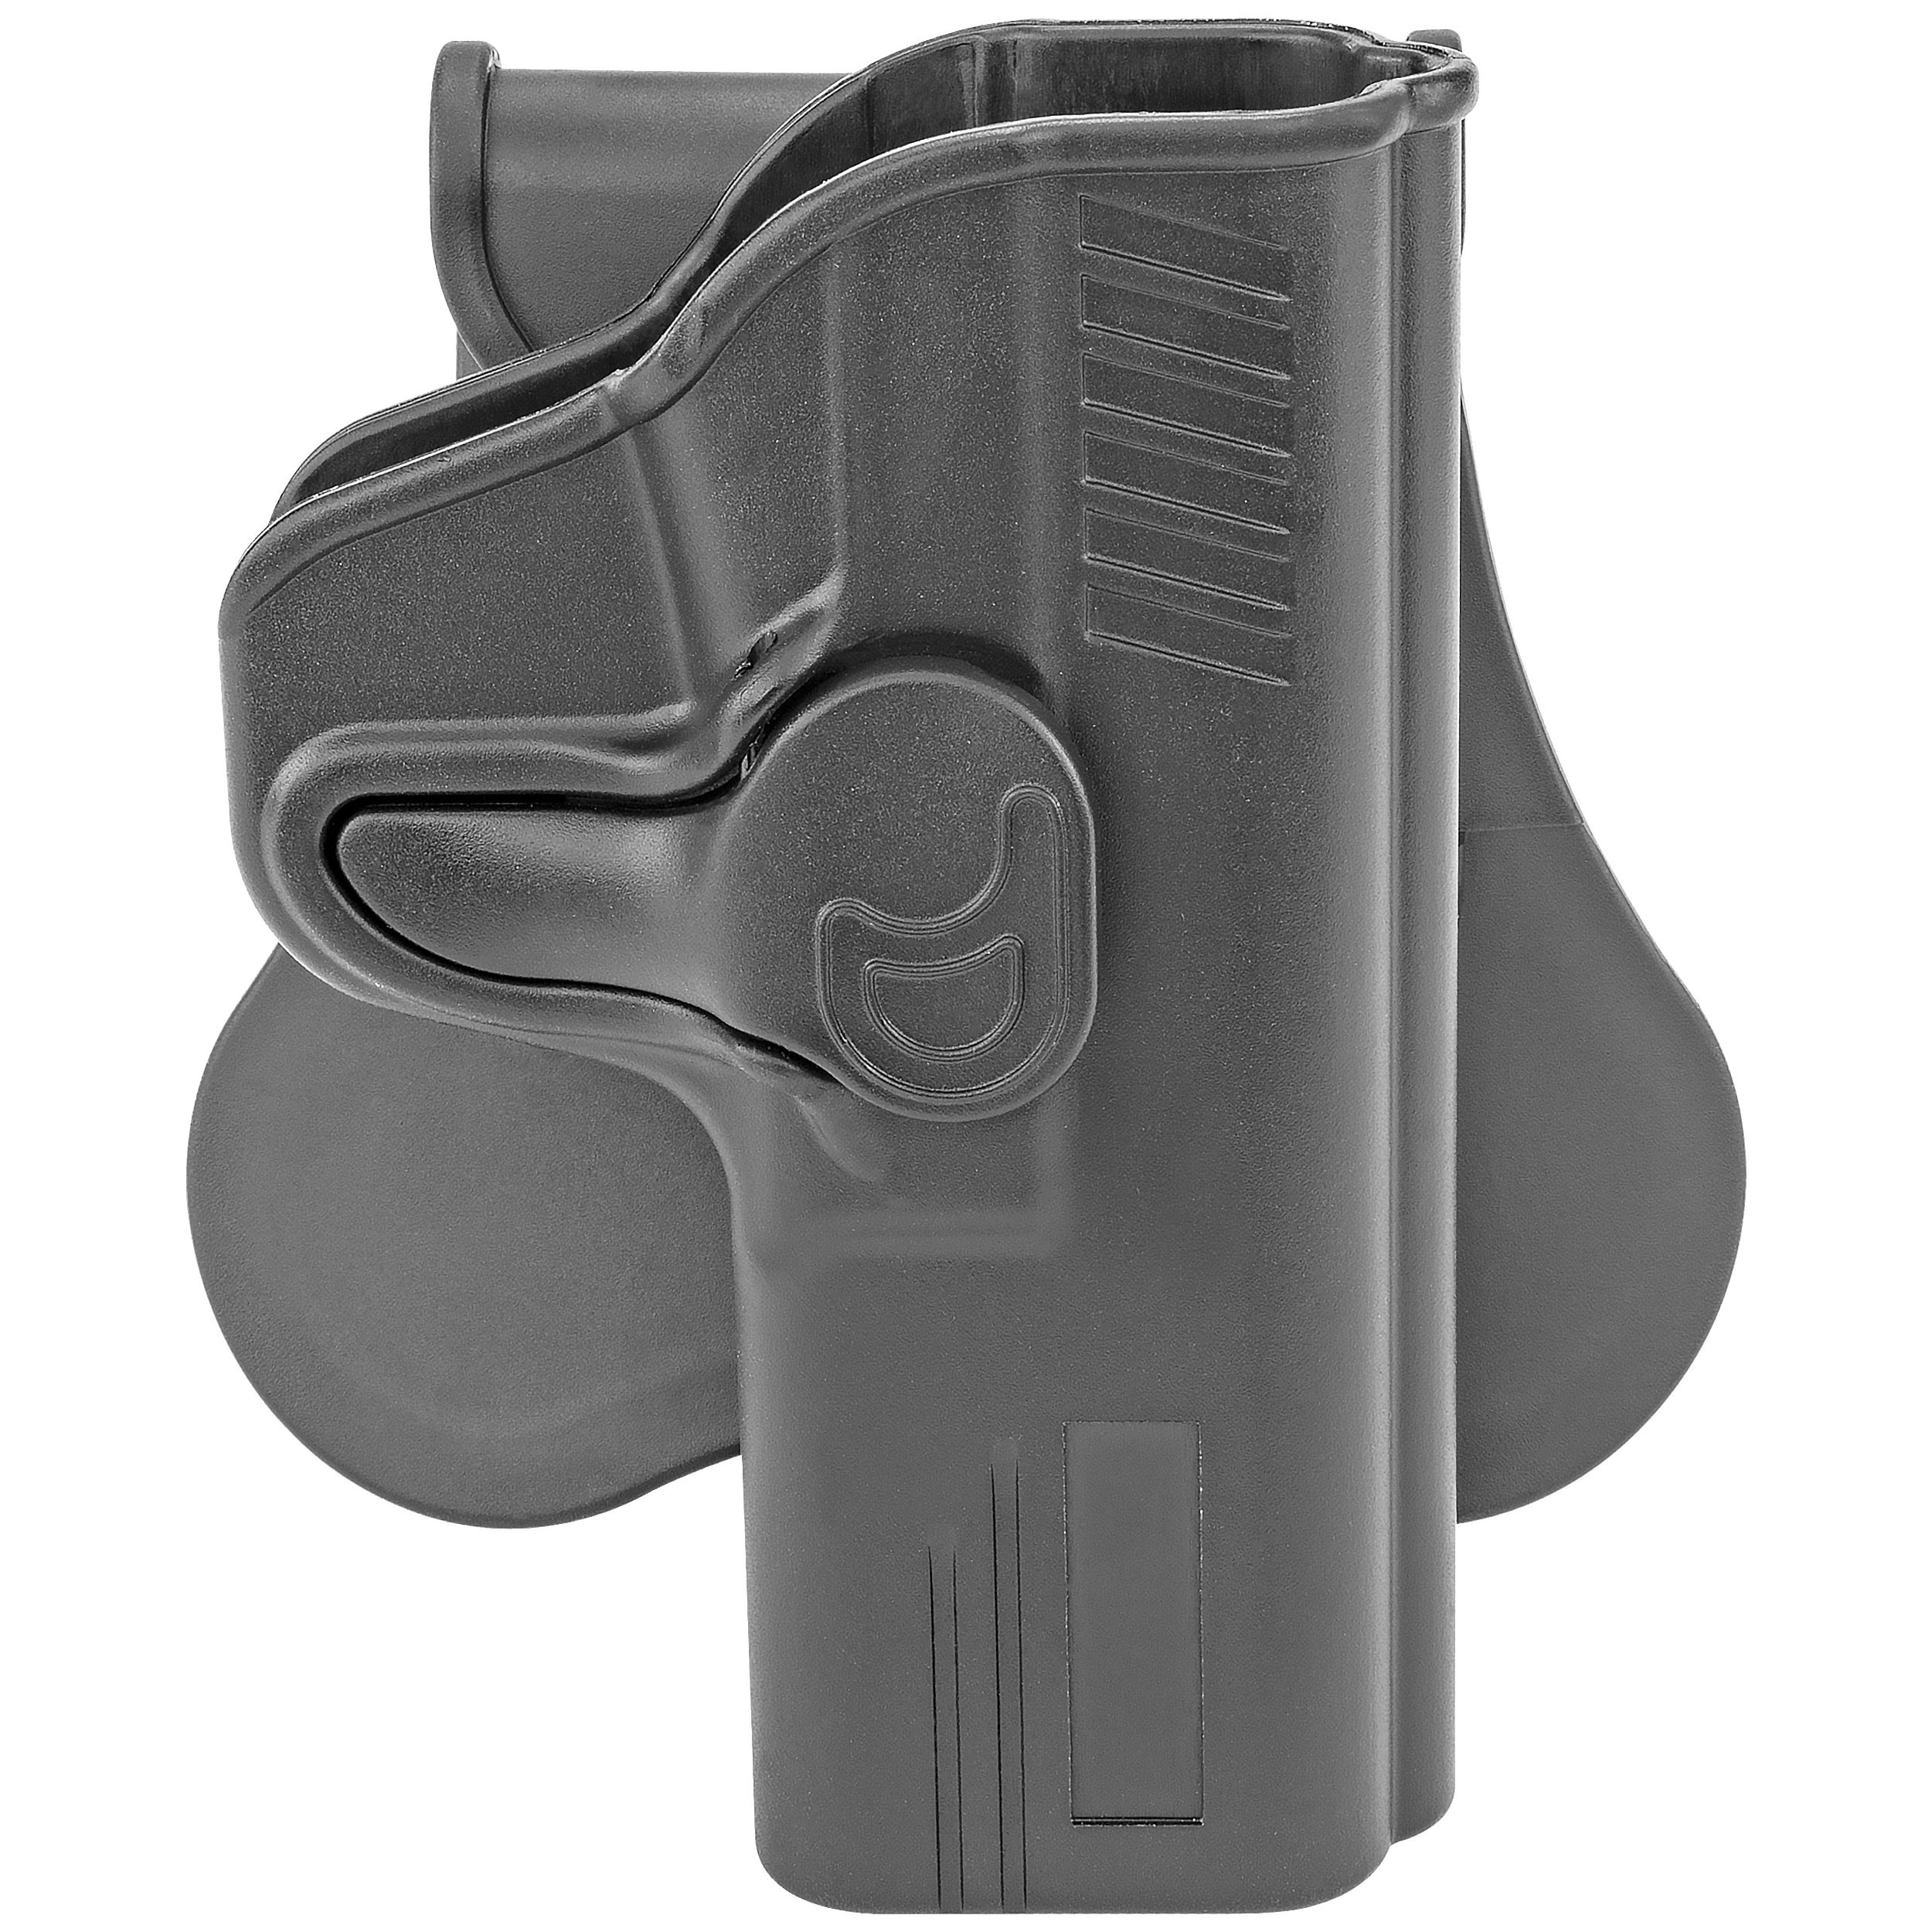 Fits S&W M&P 9mm, S&W M&P9 M2.0, Holster